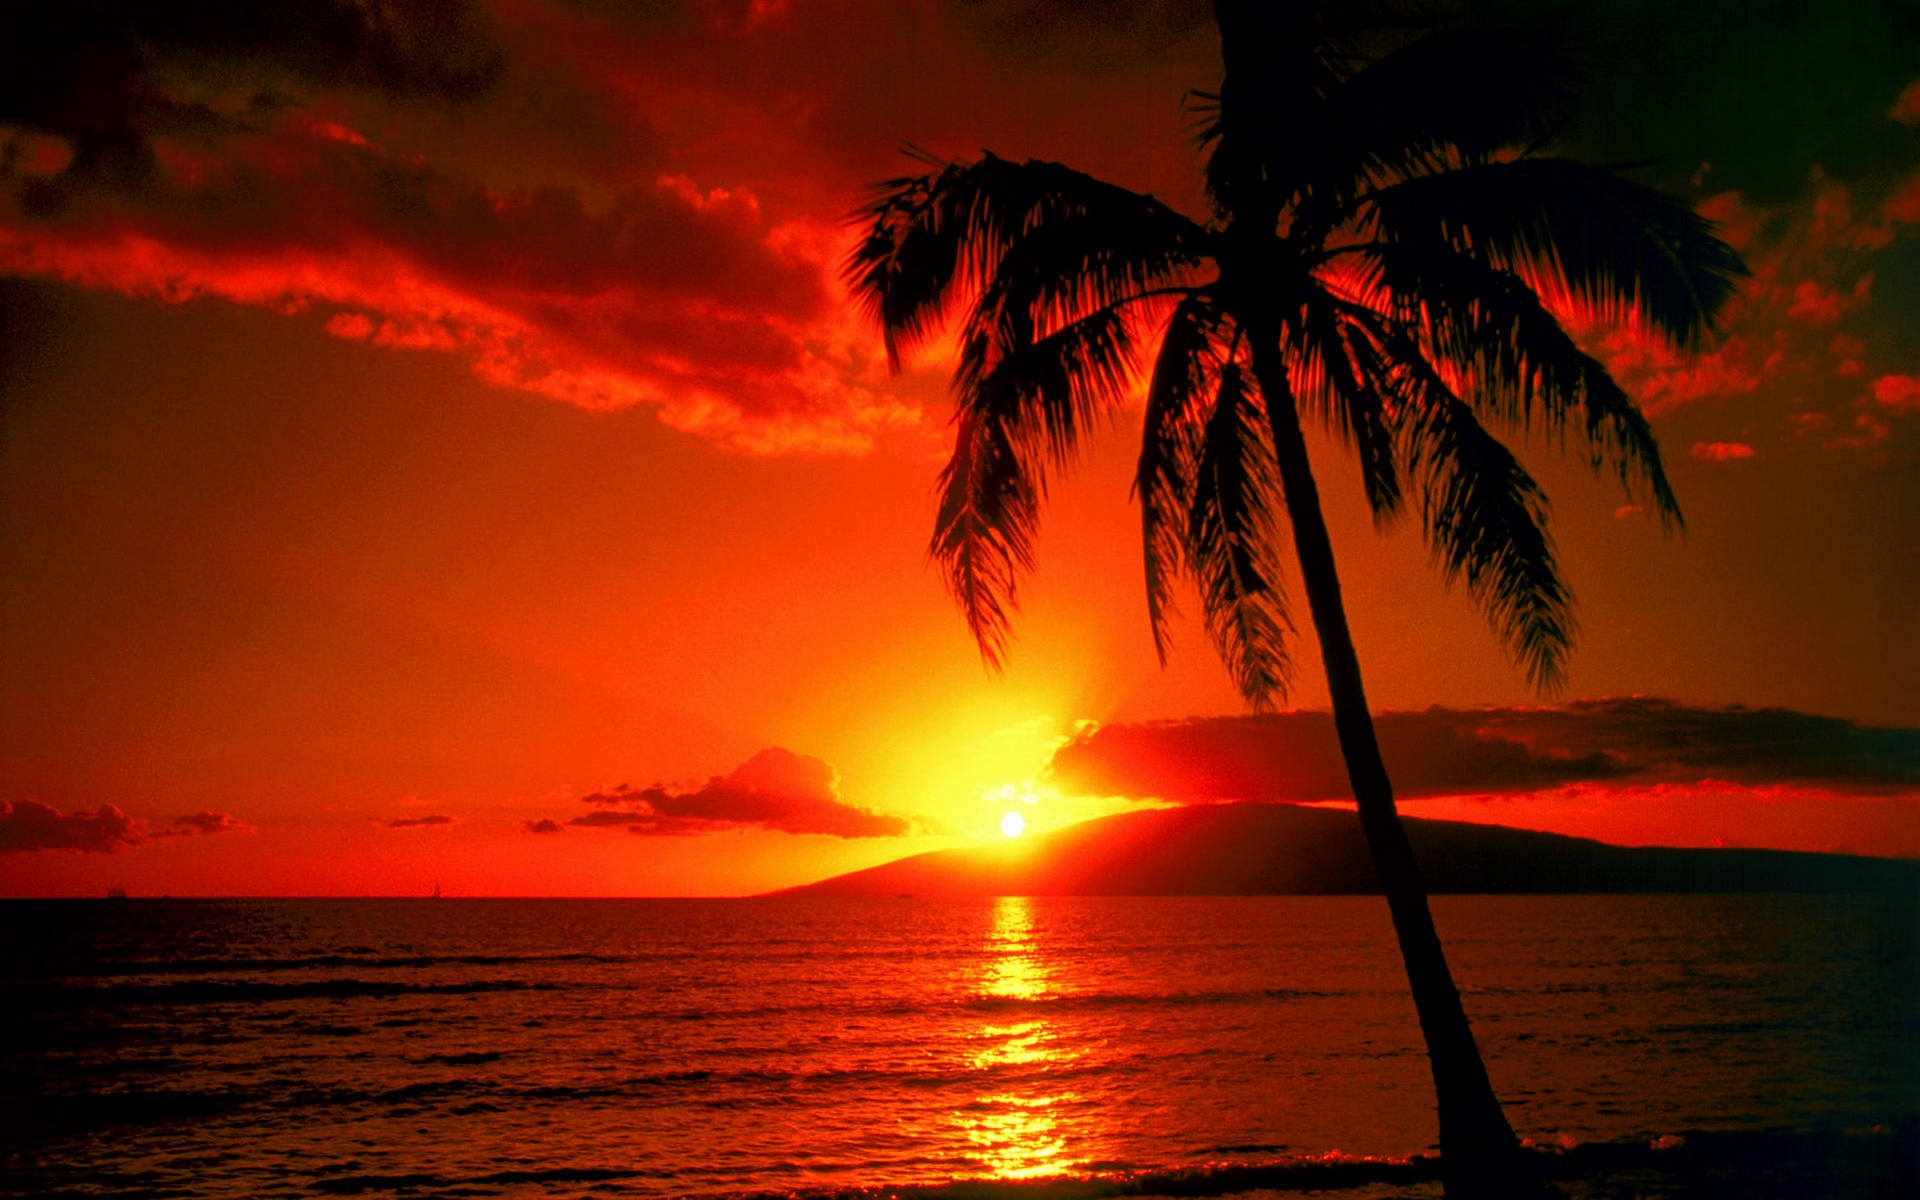 Sunset clipart sunset wallpaper. Free sunsets download clip